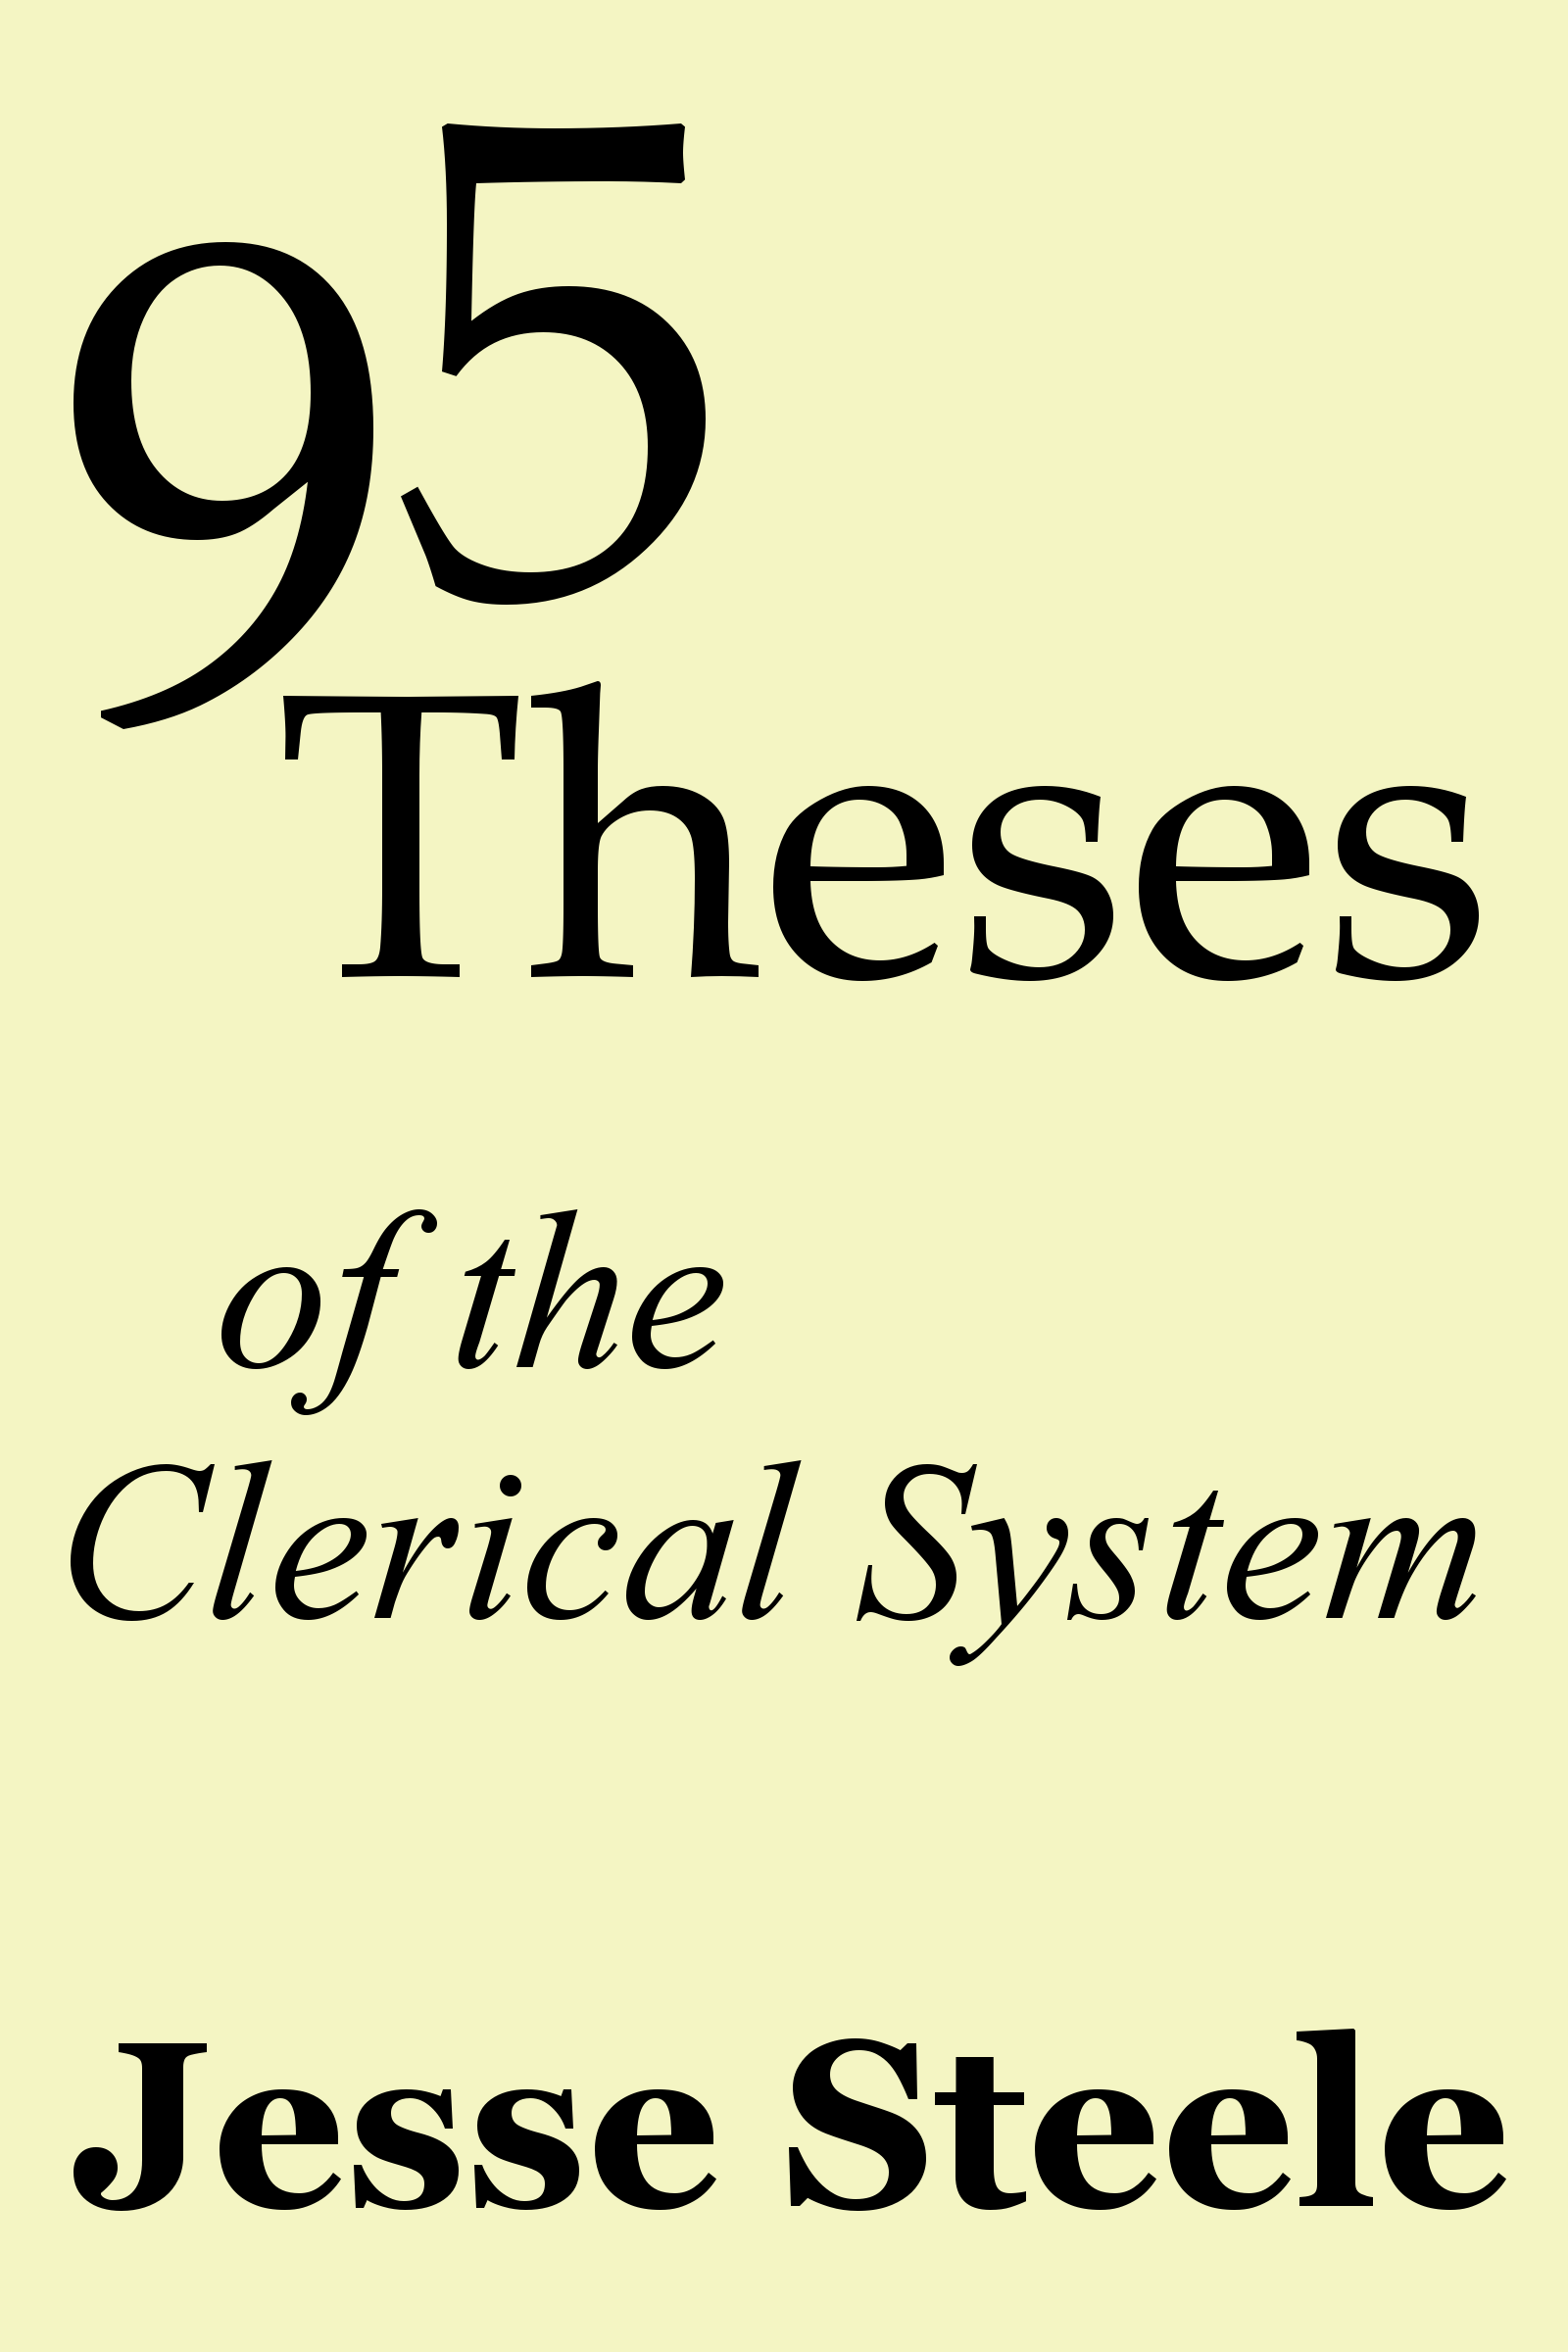 95 theses list in english Quizlet provides 95 theses activities, flashcards and games start learning today for free.